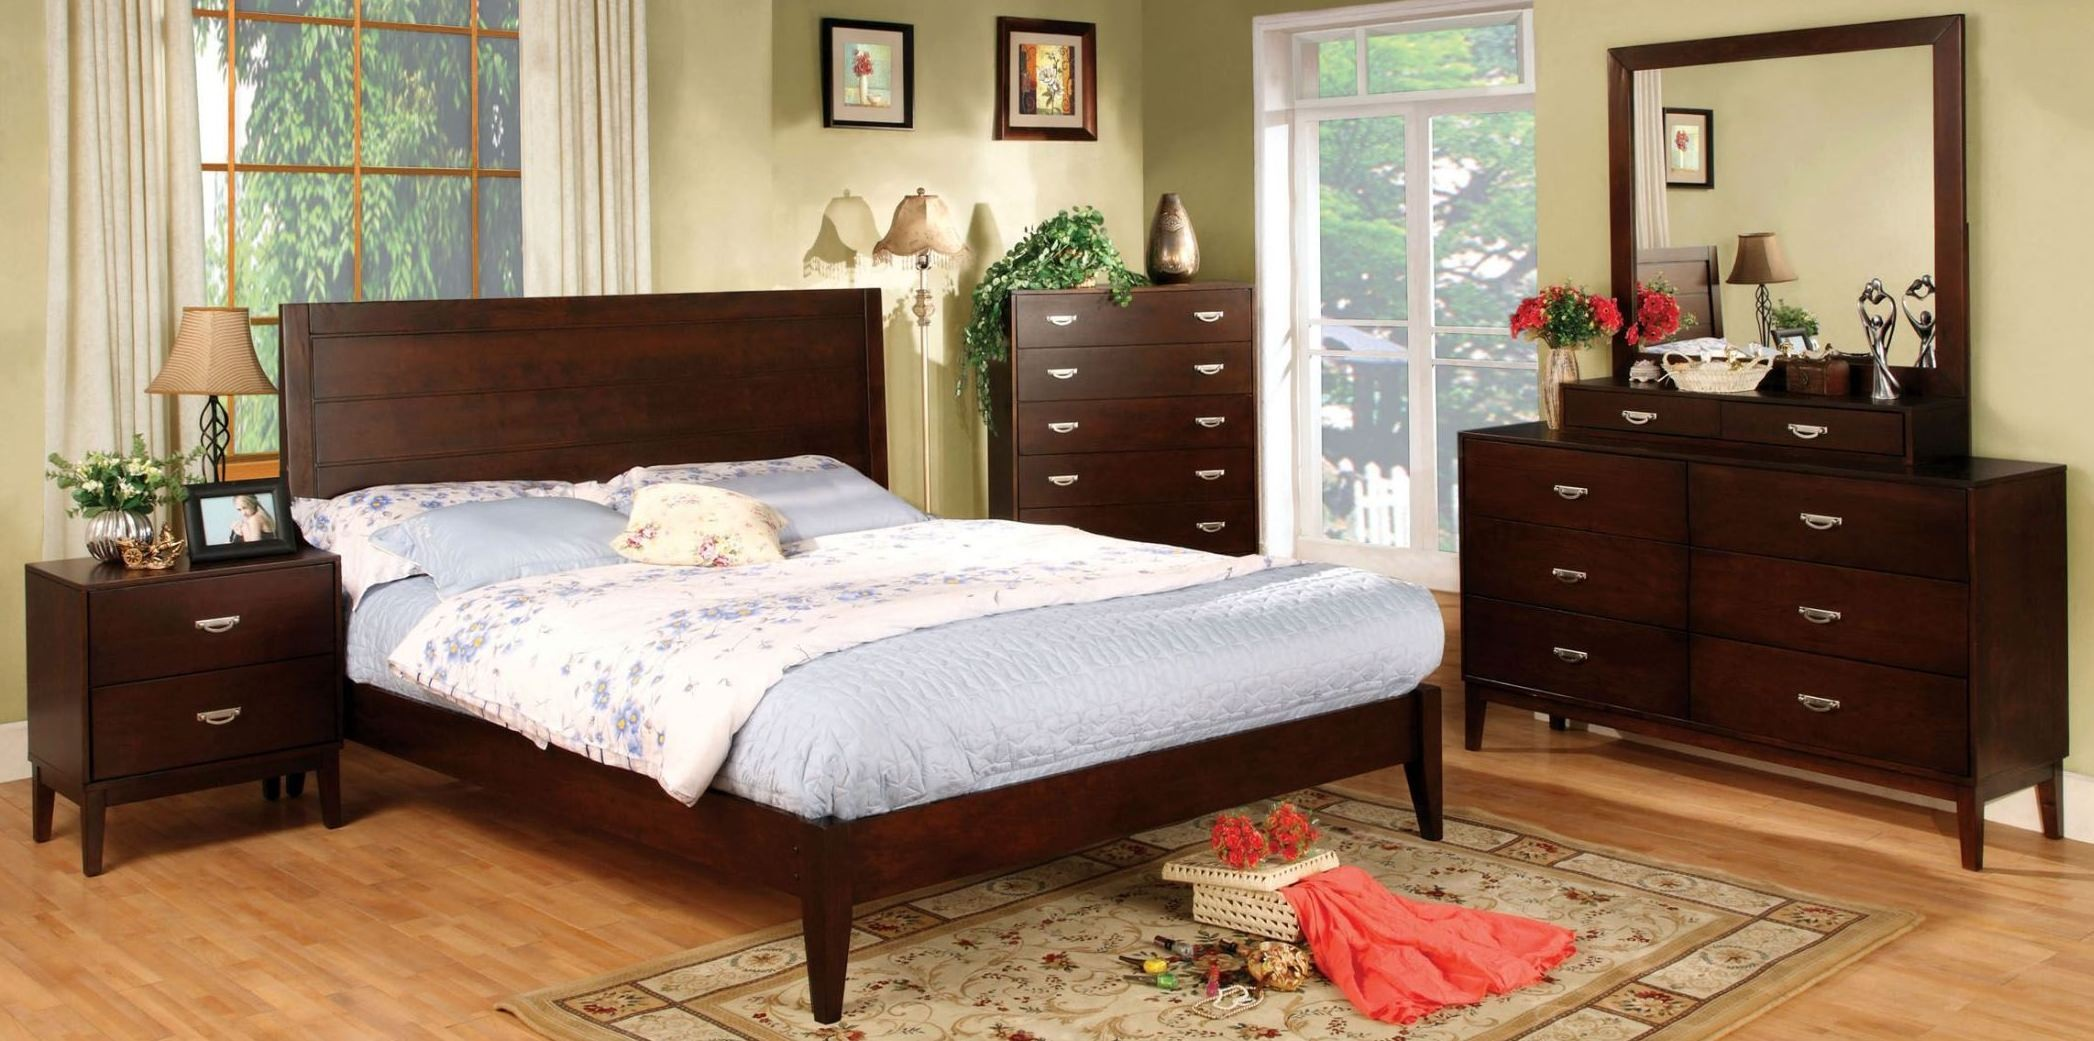 Crystal lake brown cherry platform bedroom set from furniture of america cm7910q bed coleman Lake home bedroom furniture